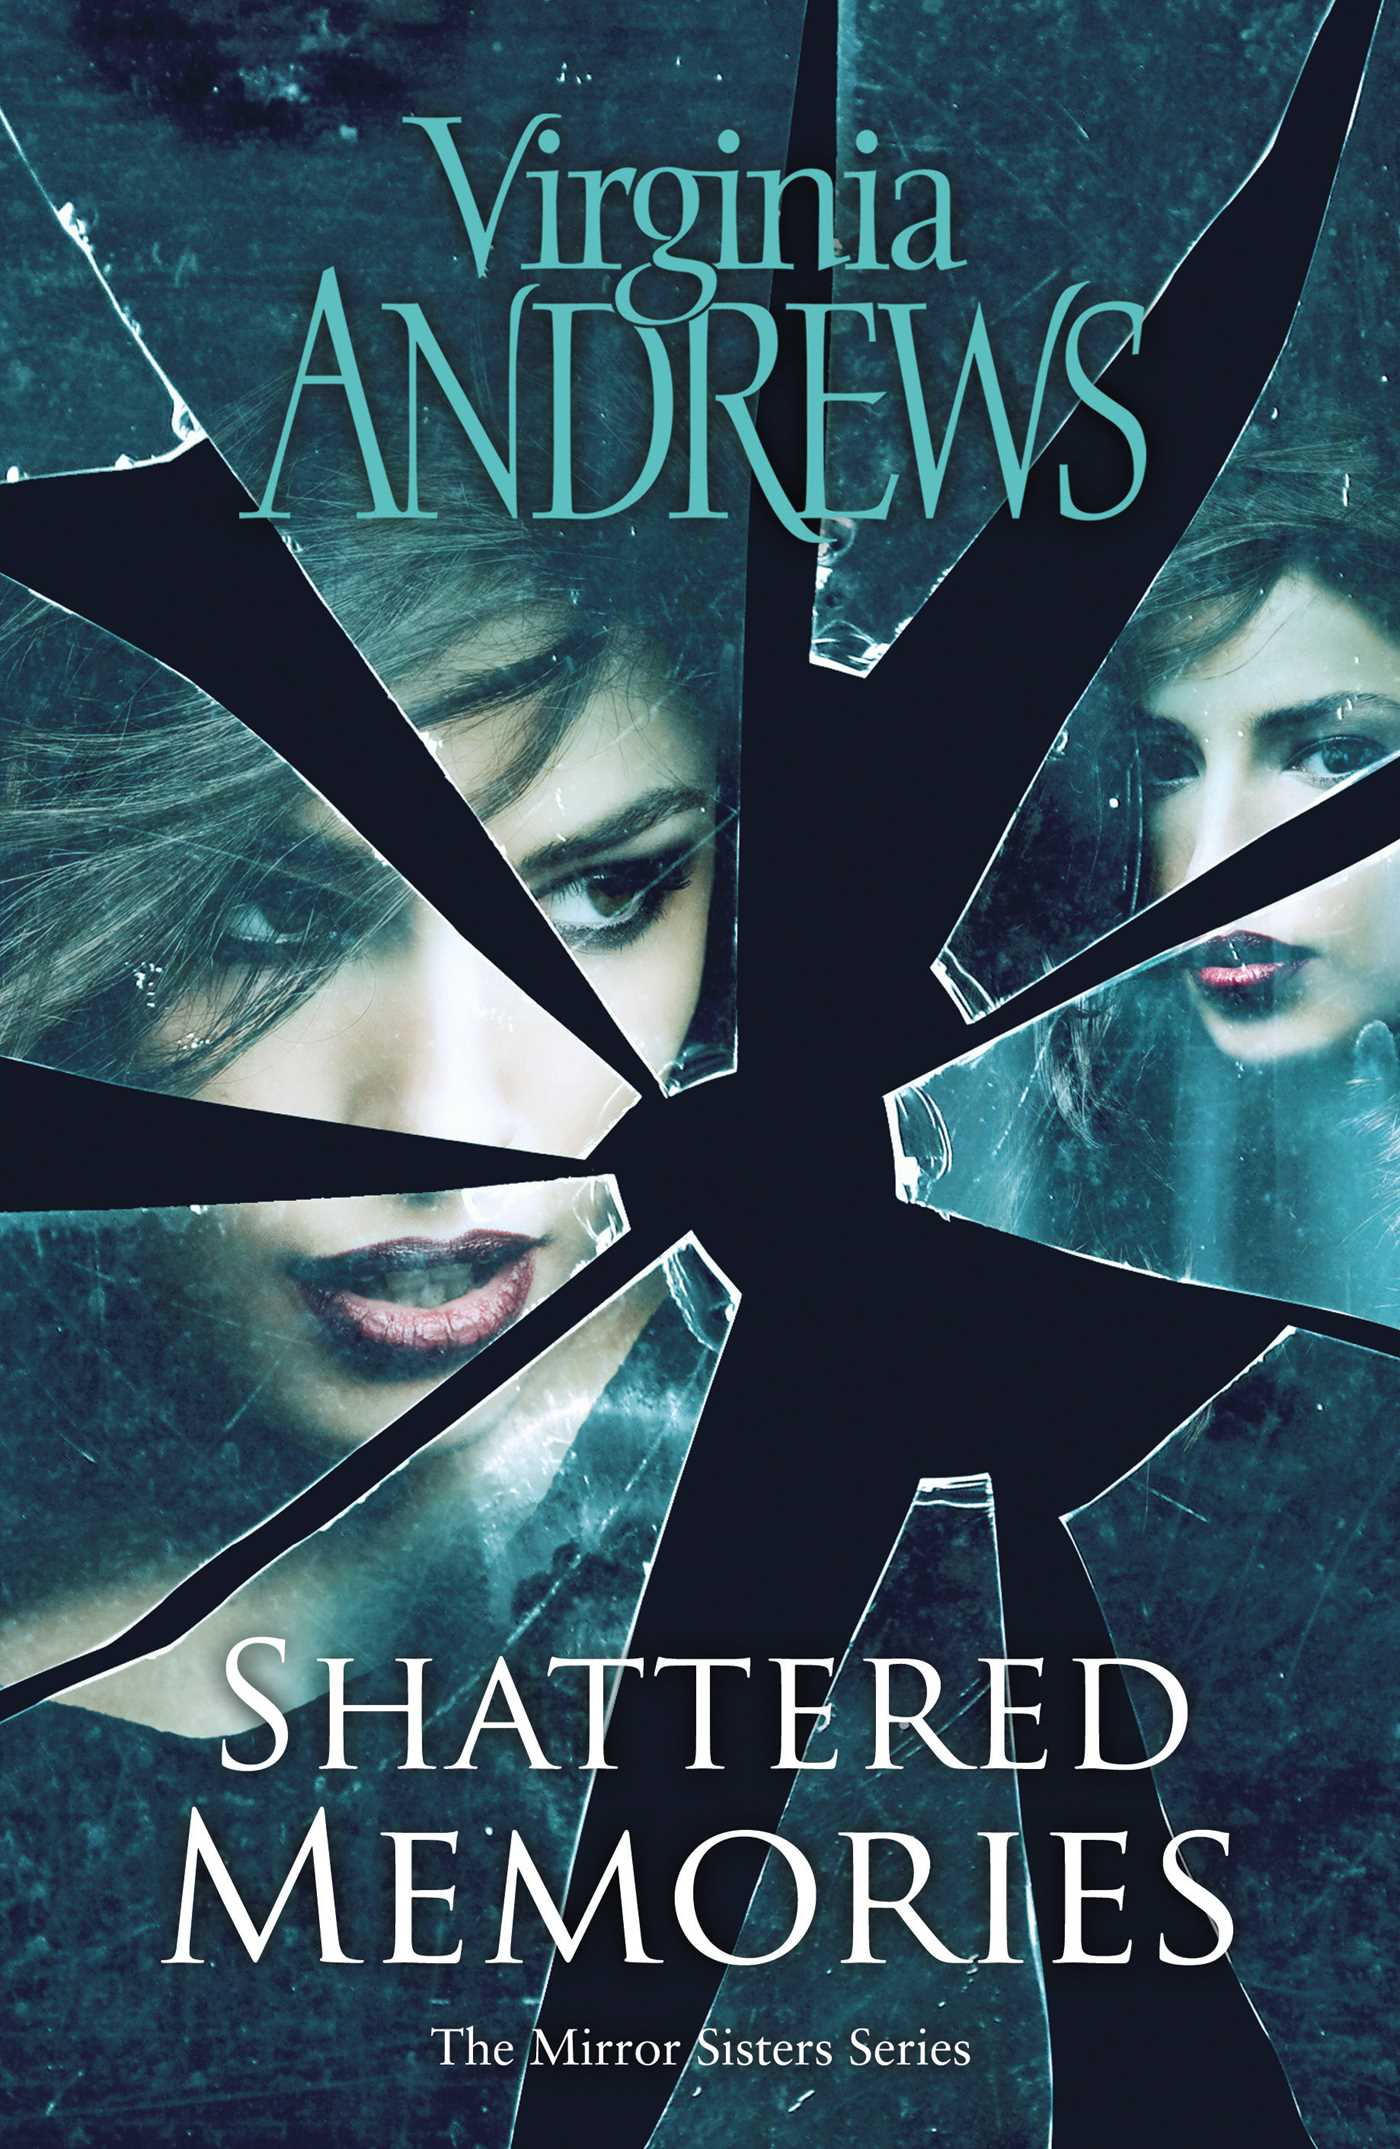 Shattered memories 9781471158858 hr